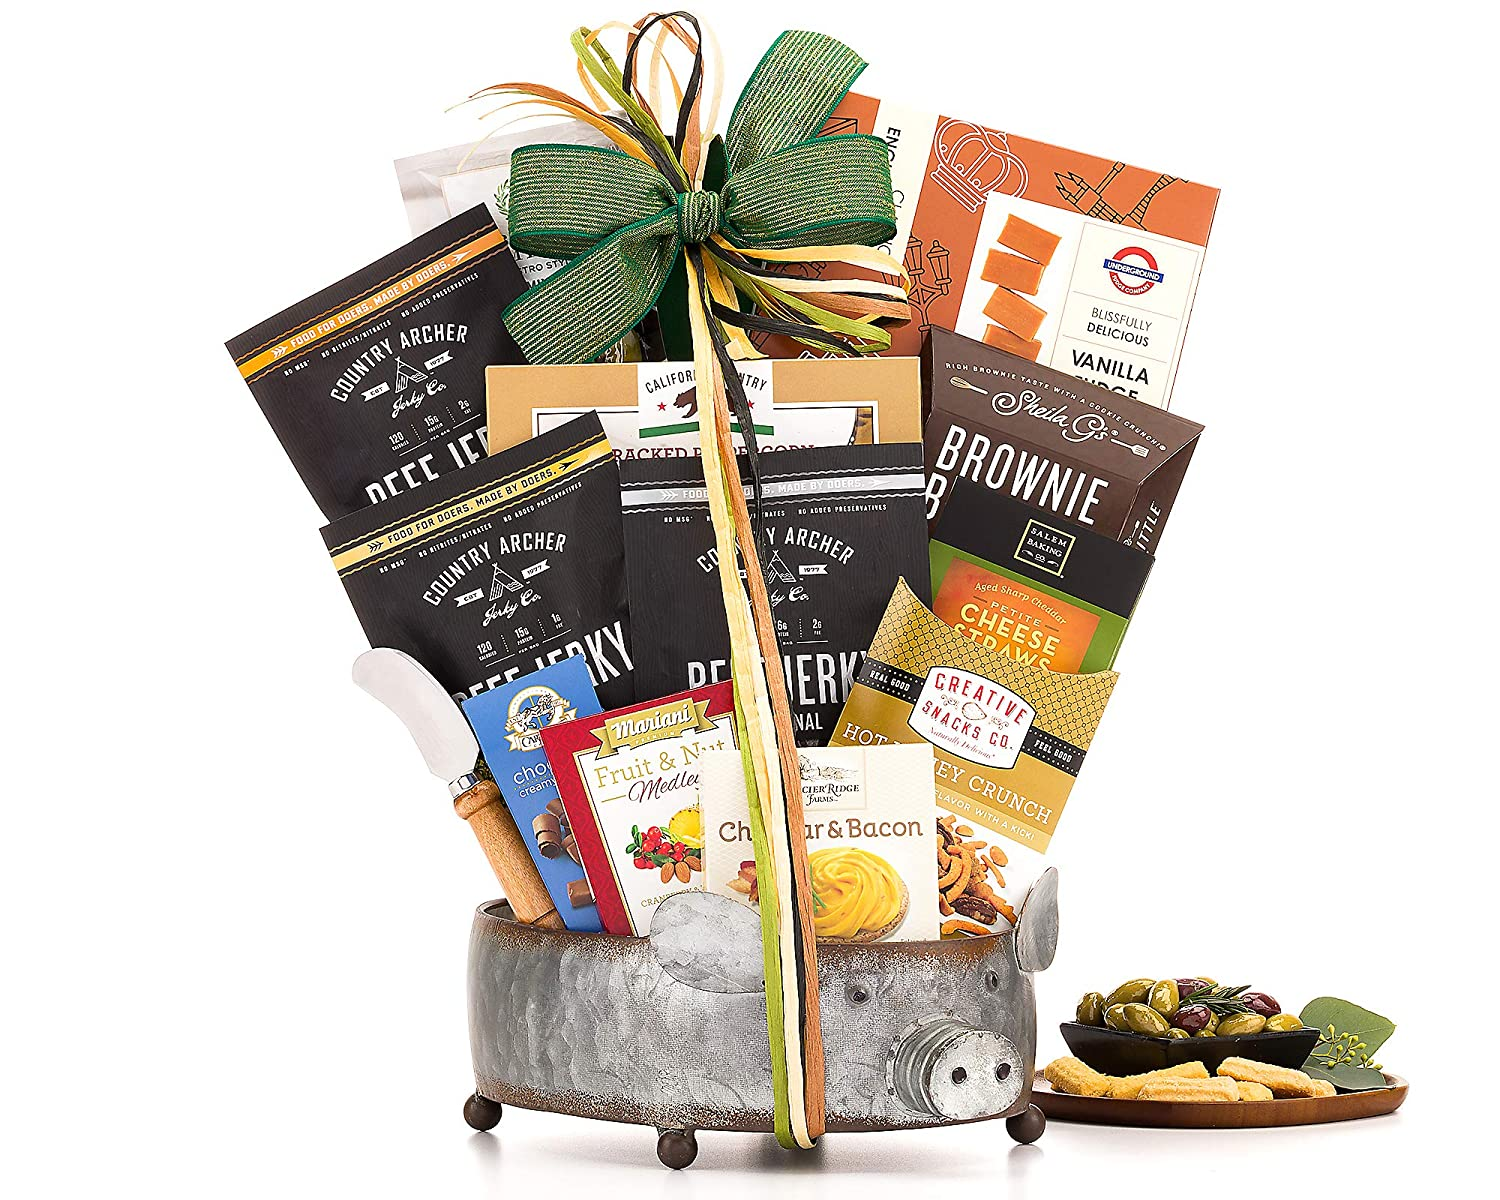 Father's Day Gift- Gourmet Jerky and Savory Snacks Spectacular Pig-Shaped Reusable Metal Gift Basket Snacks Cheese Spread Peanuts and more